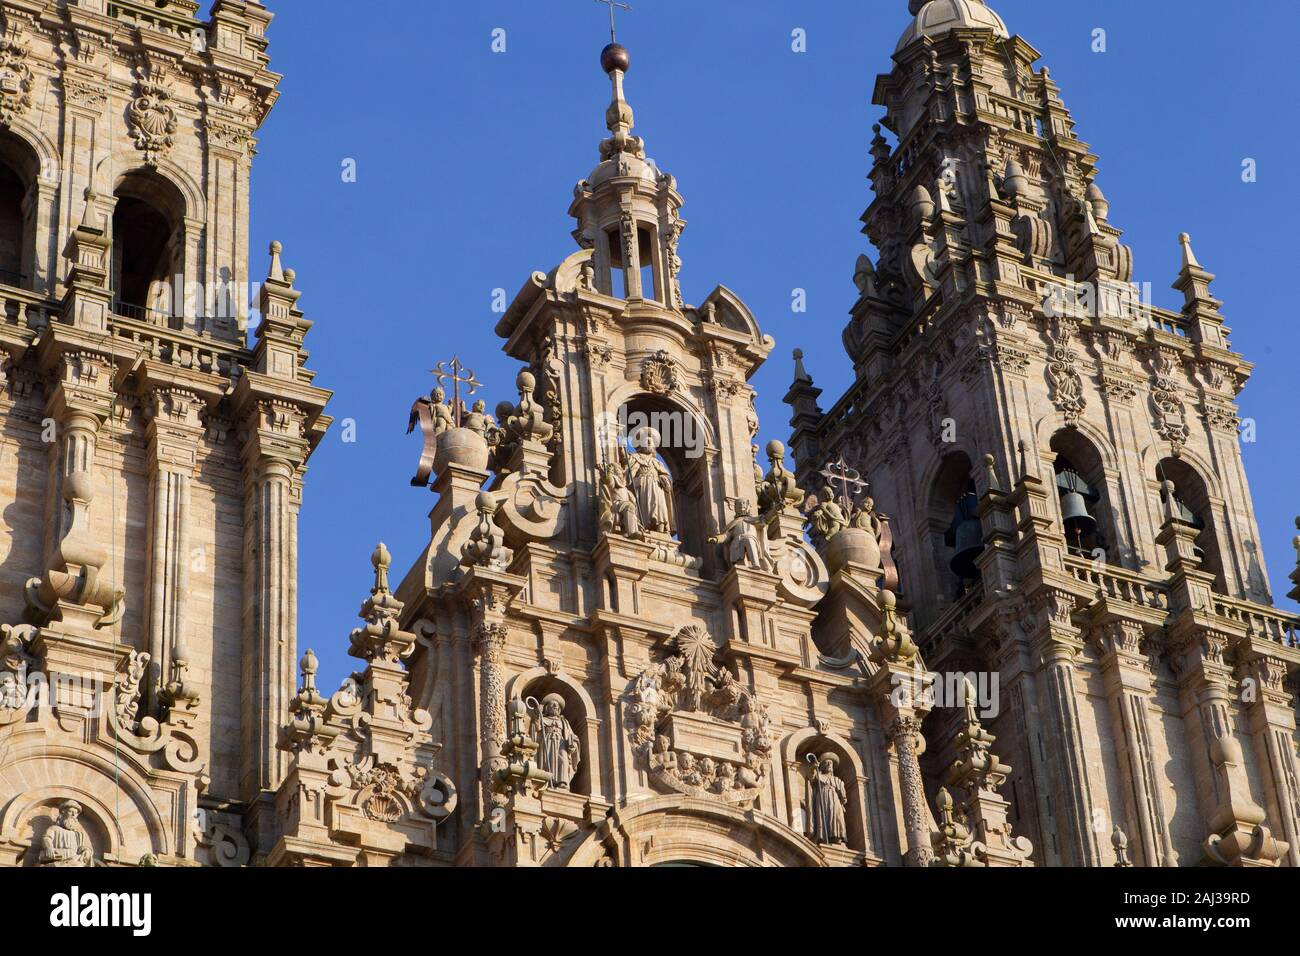 view of the main baroque facade of the cathedral of Santiago de Compostela in the obradoiro square on December 6, 2019 Stock Photo